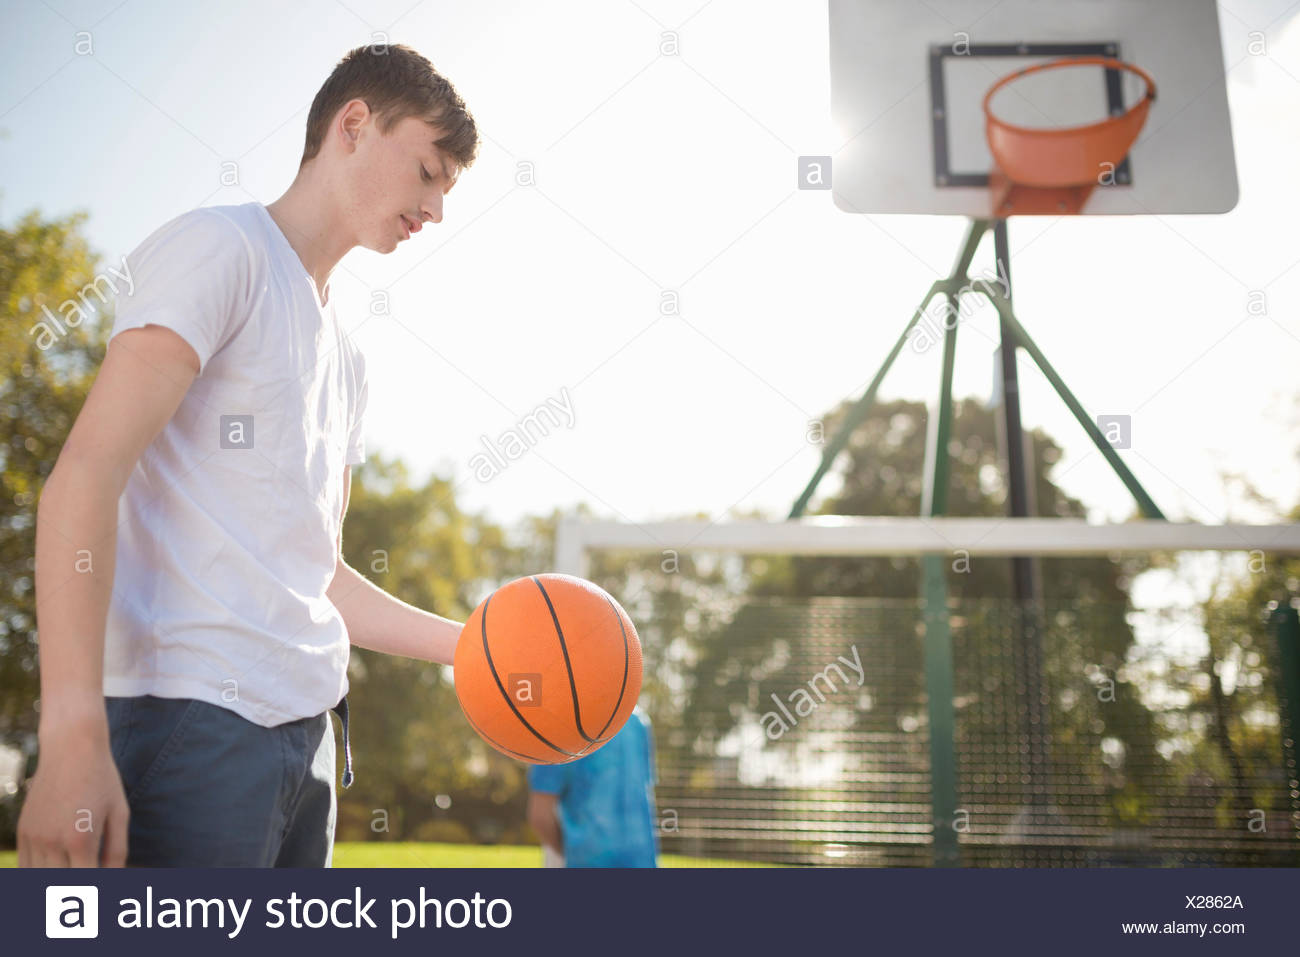 Young male basketball player on court with basketball - Stock Image